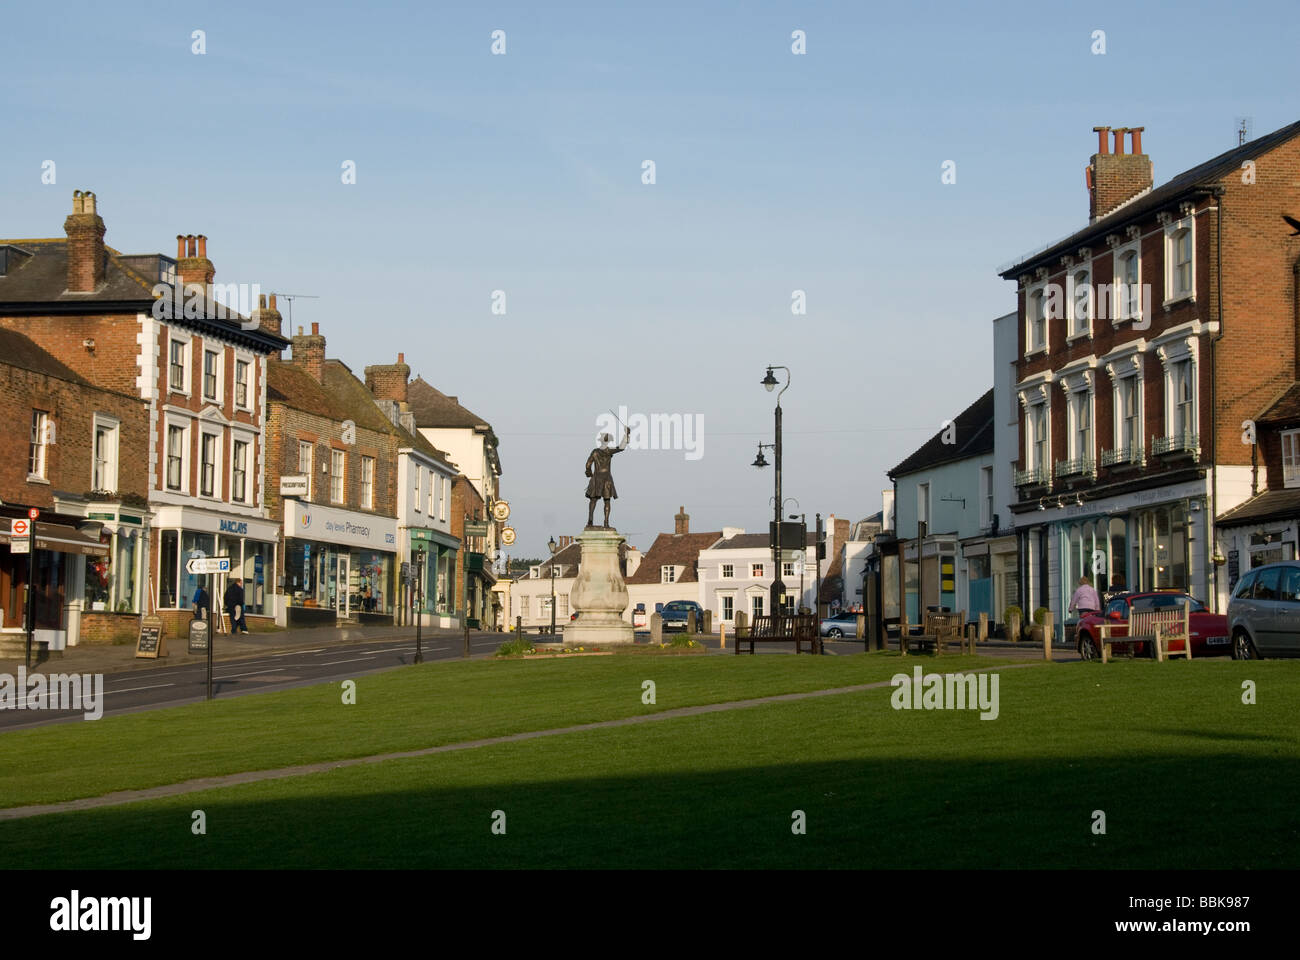 Village green and statue of General James Wolfe, Westerham, Kent, England - Stock Image